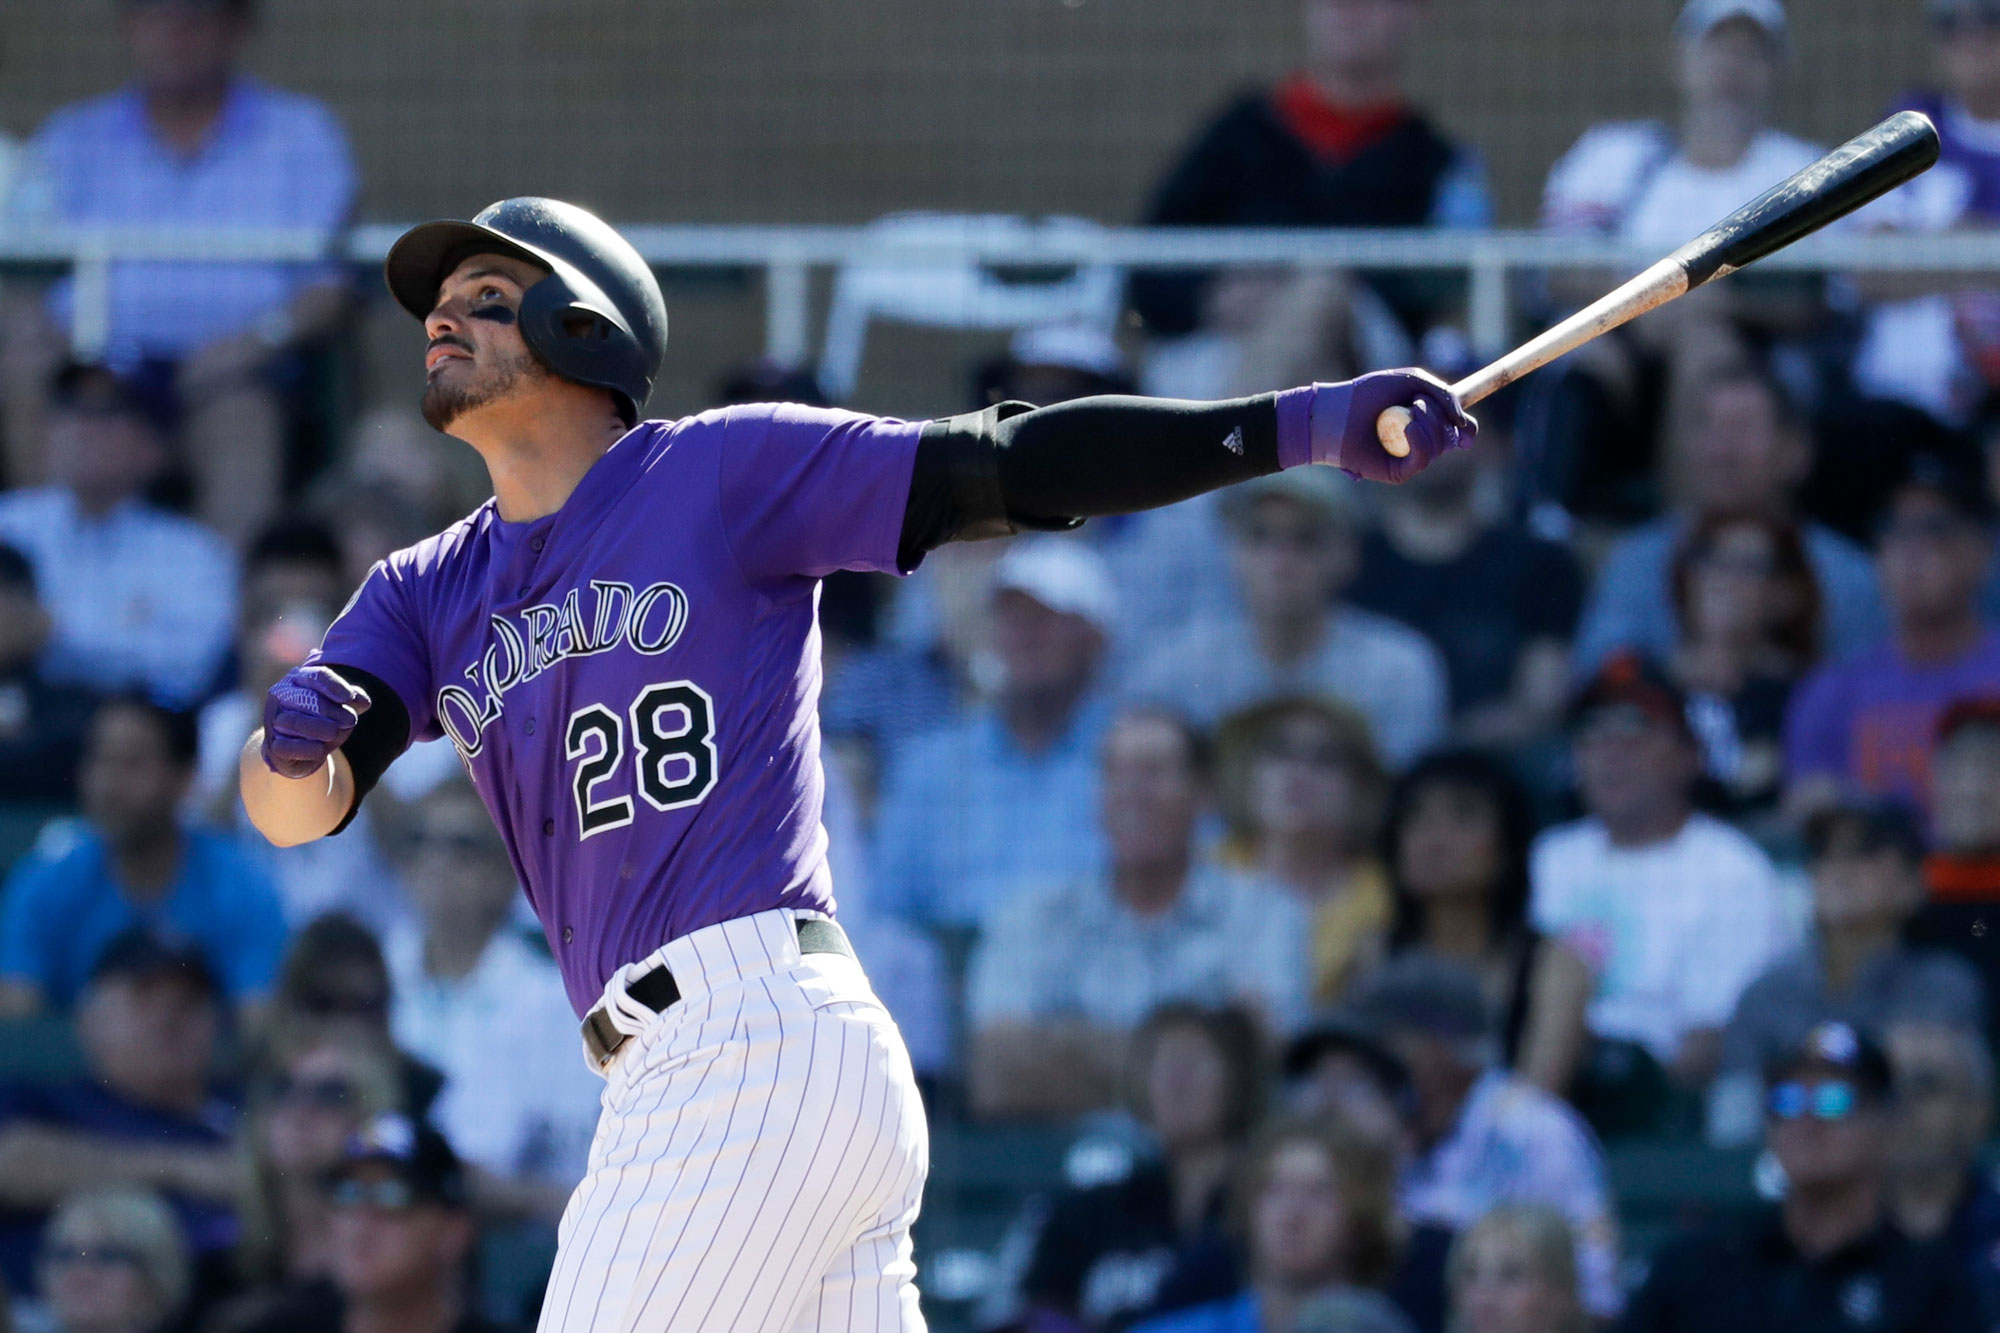 <p>Colorado Rockies' Nolan Arenado watches his two-run home run against the San Francisco Giants during the fifth inning of a spring baseball game in Scottsdale, Ariz., Sunday, March 3, 2019.</p>